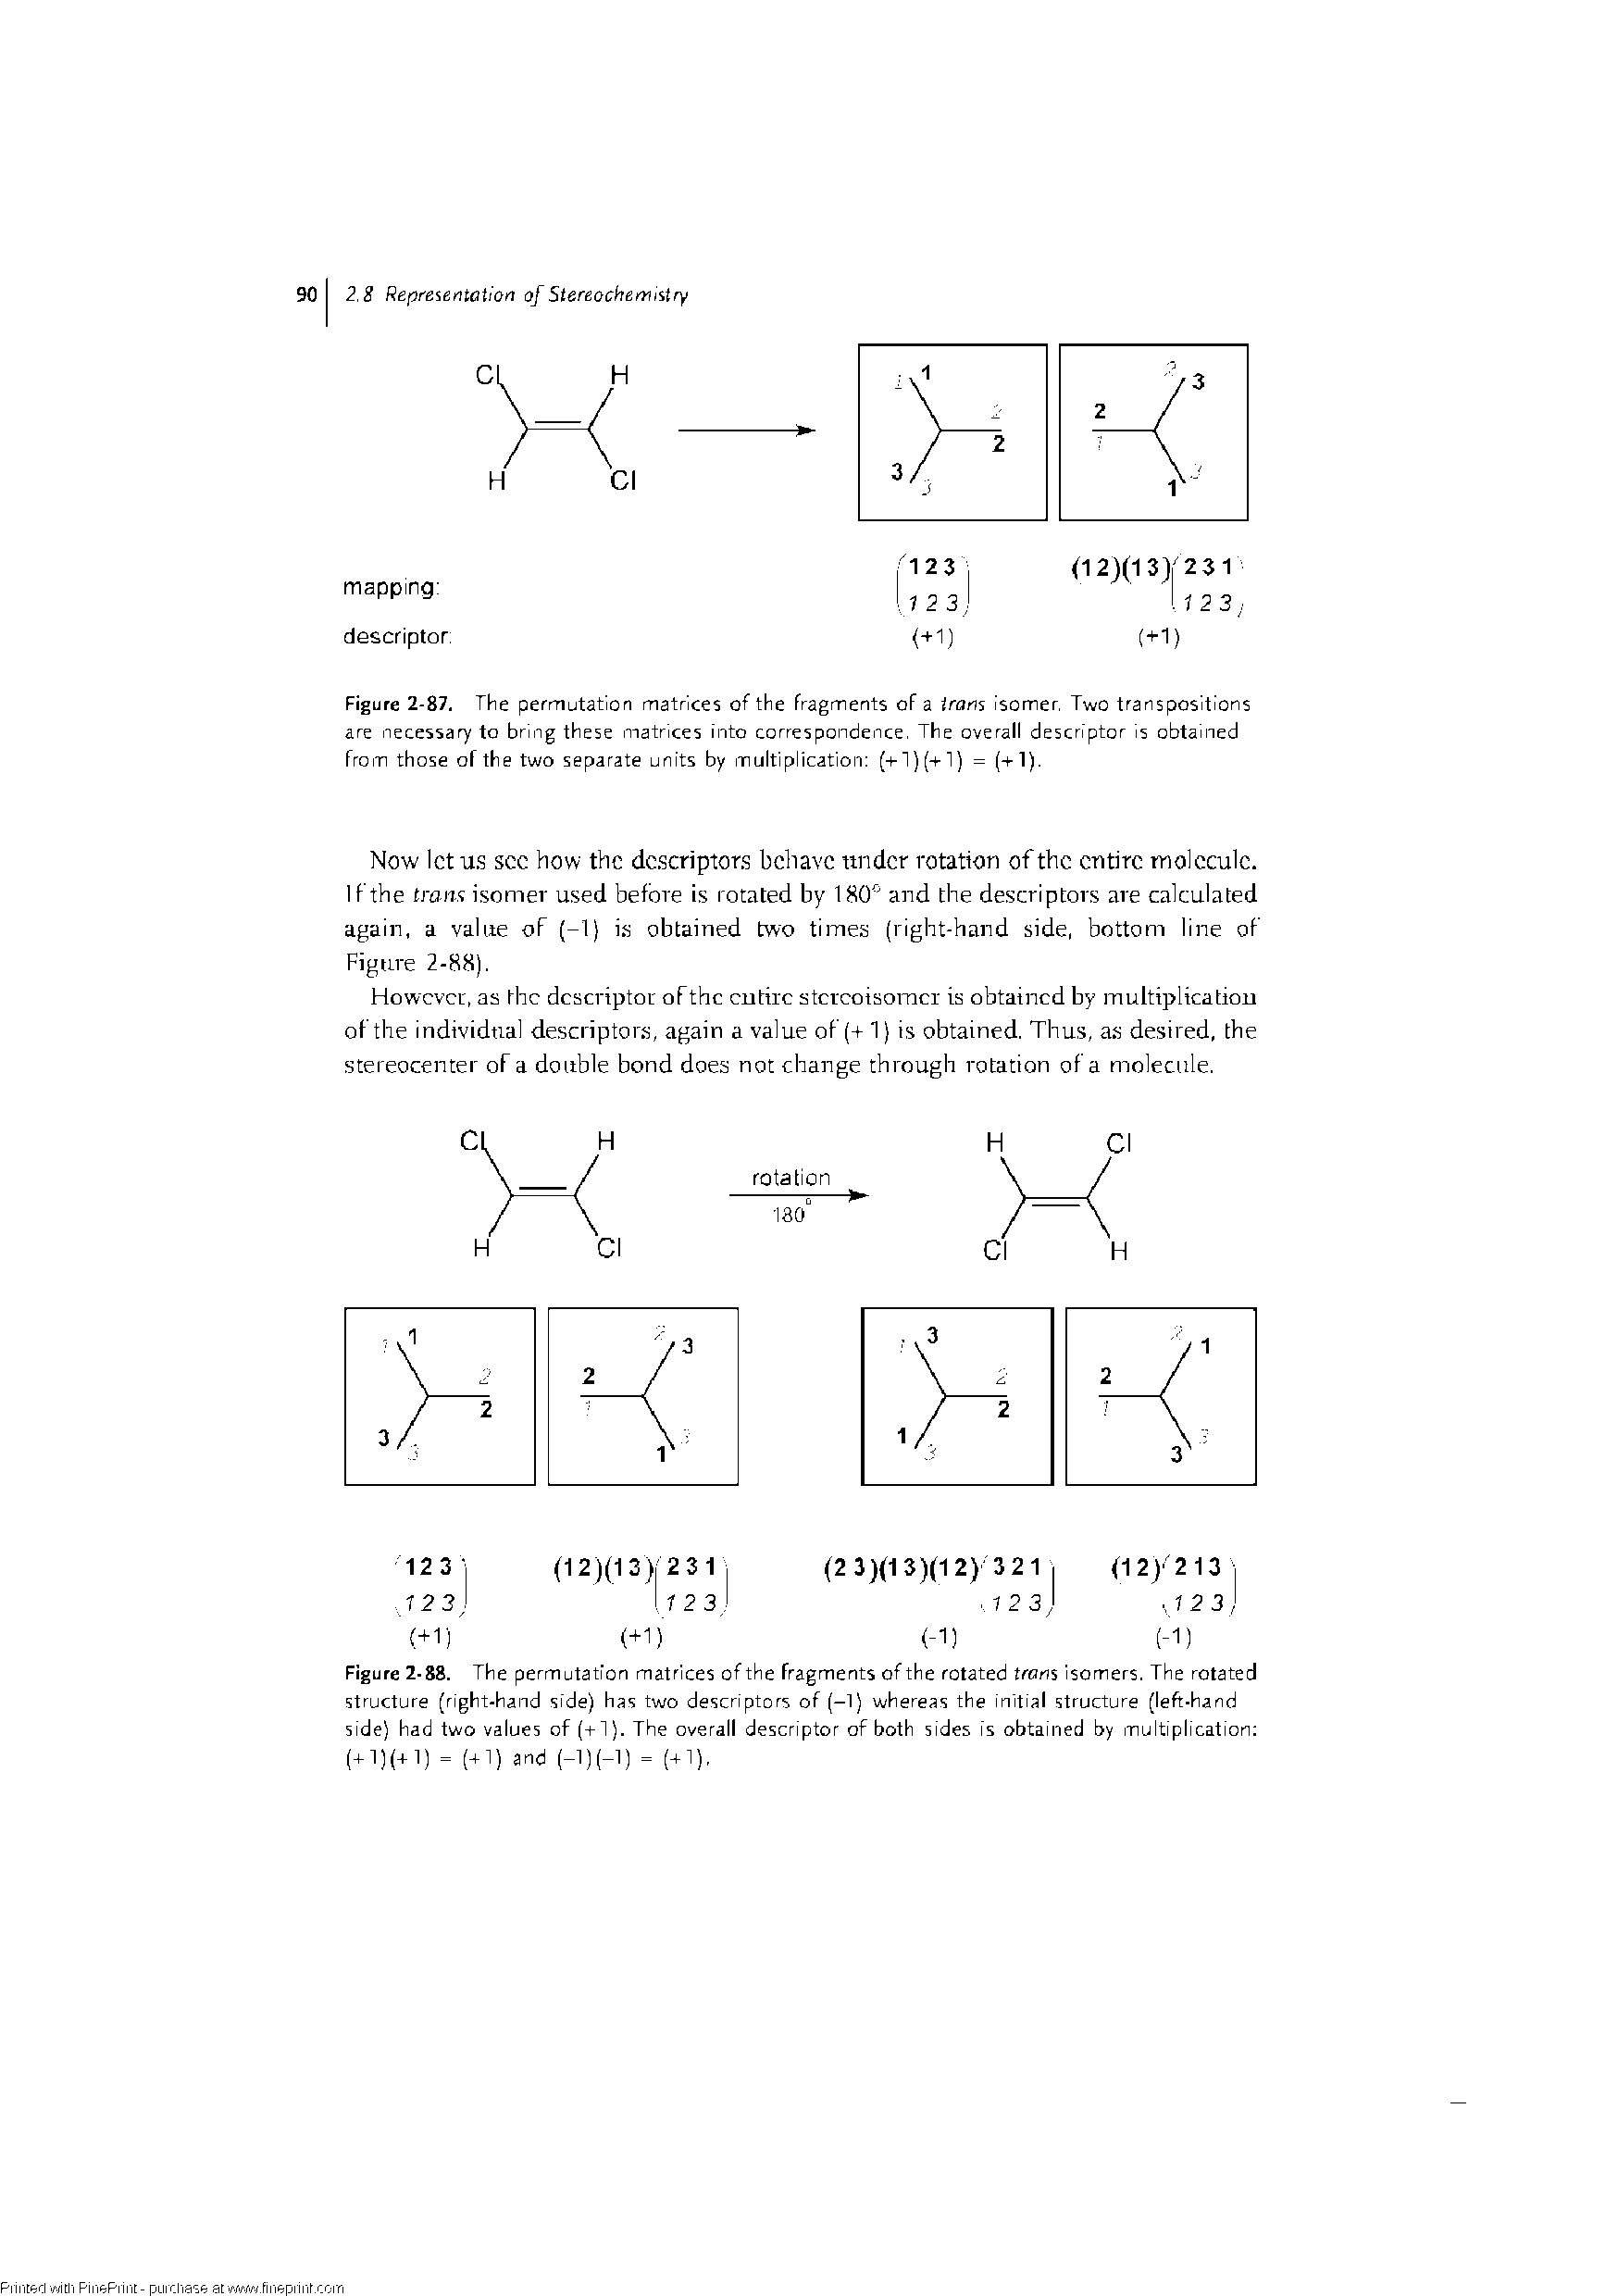 "Figure 2-88. The permutation matrices of the fragments of the rotated trans Isomers. The <a href=""/info/rotational_structure"">rotated structure</a> (<a href=""/info/right_handed_dna"">right-hand</a> side) has two descriptors of (-1) whereas the <a href=""/info/initial_structures"">initial structure</a> (<a href=""/info/left_handed"">left-hand</a> side) had two values of (-r 1). The overall descriptor of both sides is obtained by multiplication (+1)(+1) = (41) and (-1)(-1) = (41),"